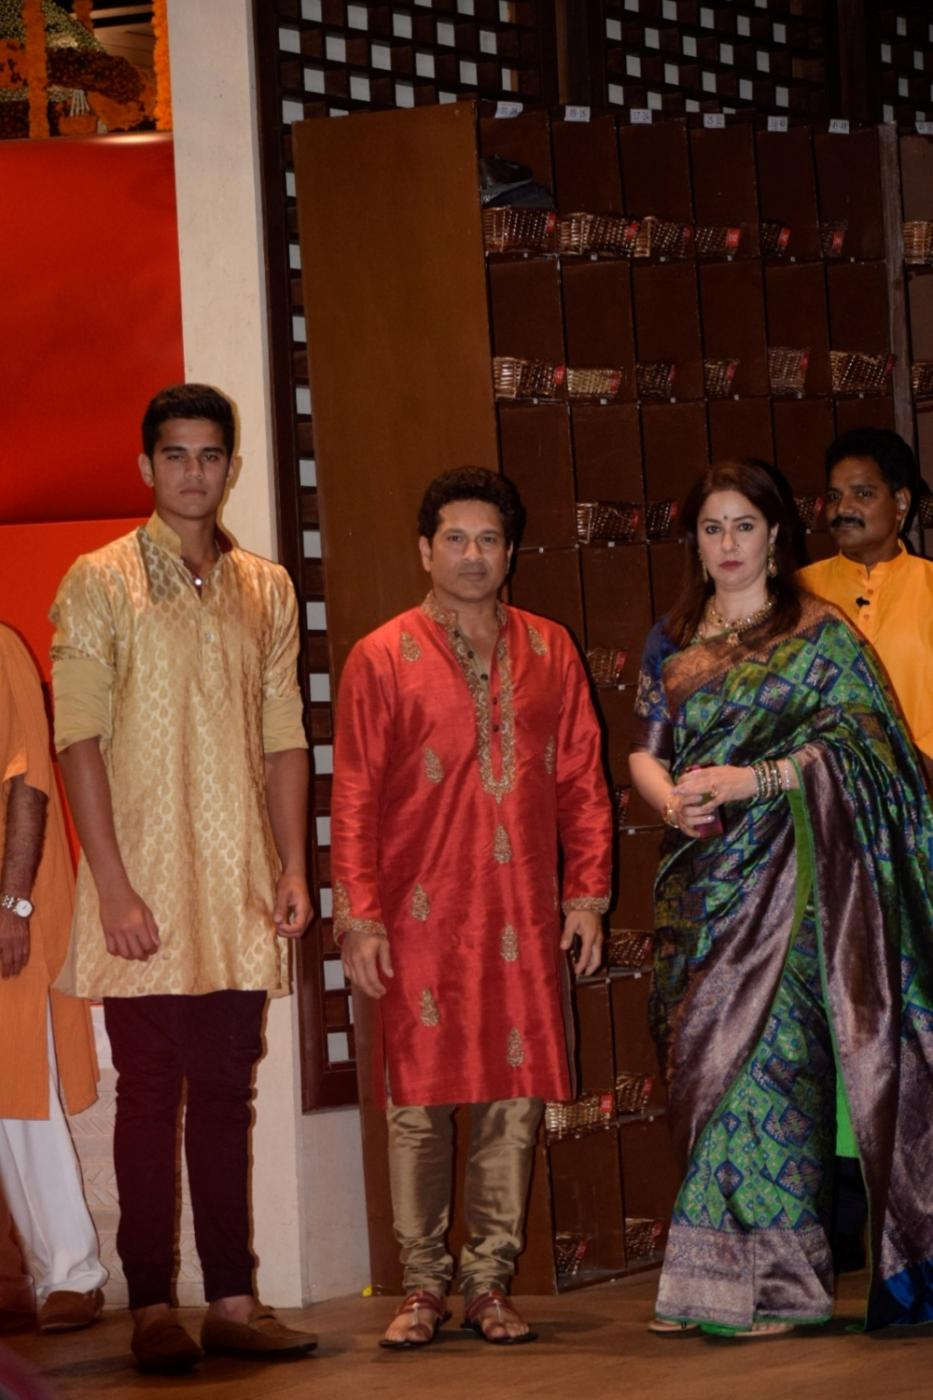 Mumbai: Former cricketer Sachin Tendulkar along with his wife Anjali Tendulkar and son Arjun Tendulkar at Reliance Industries Chairman and MD Mukesh Ambani's residence to celebrate Ganesh Chaturthi in Mumbai on Sept 13, 2018. (Photo: IANS) by .